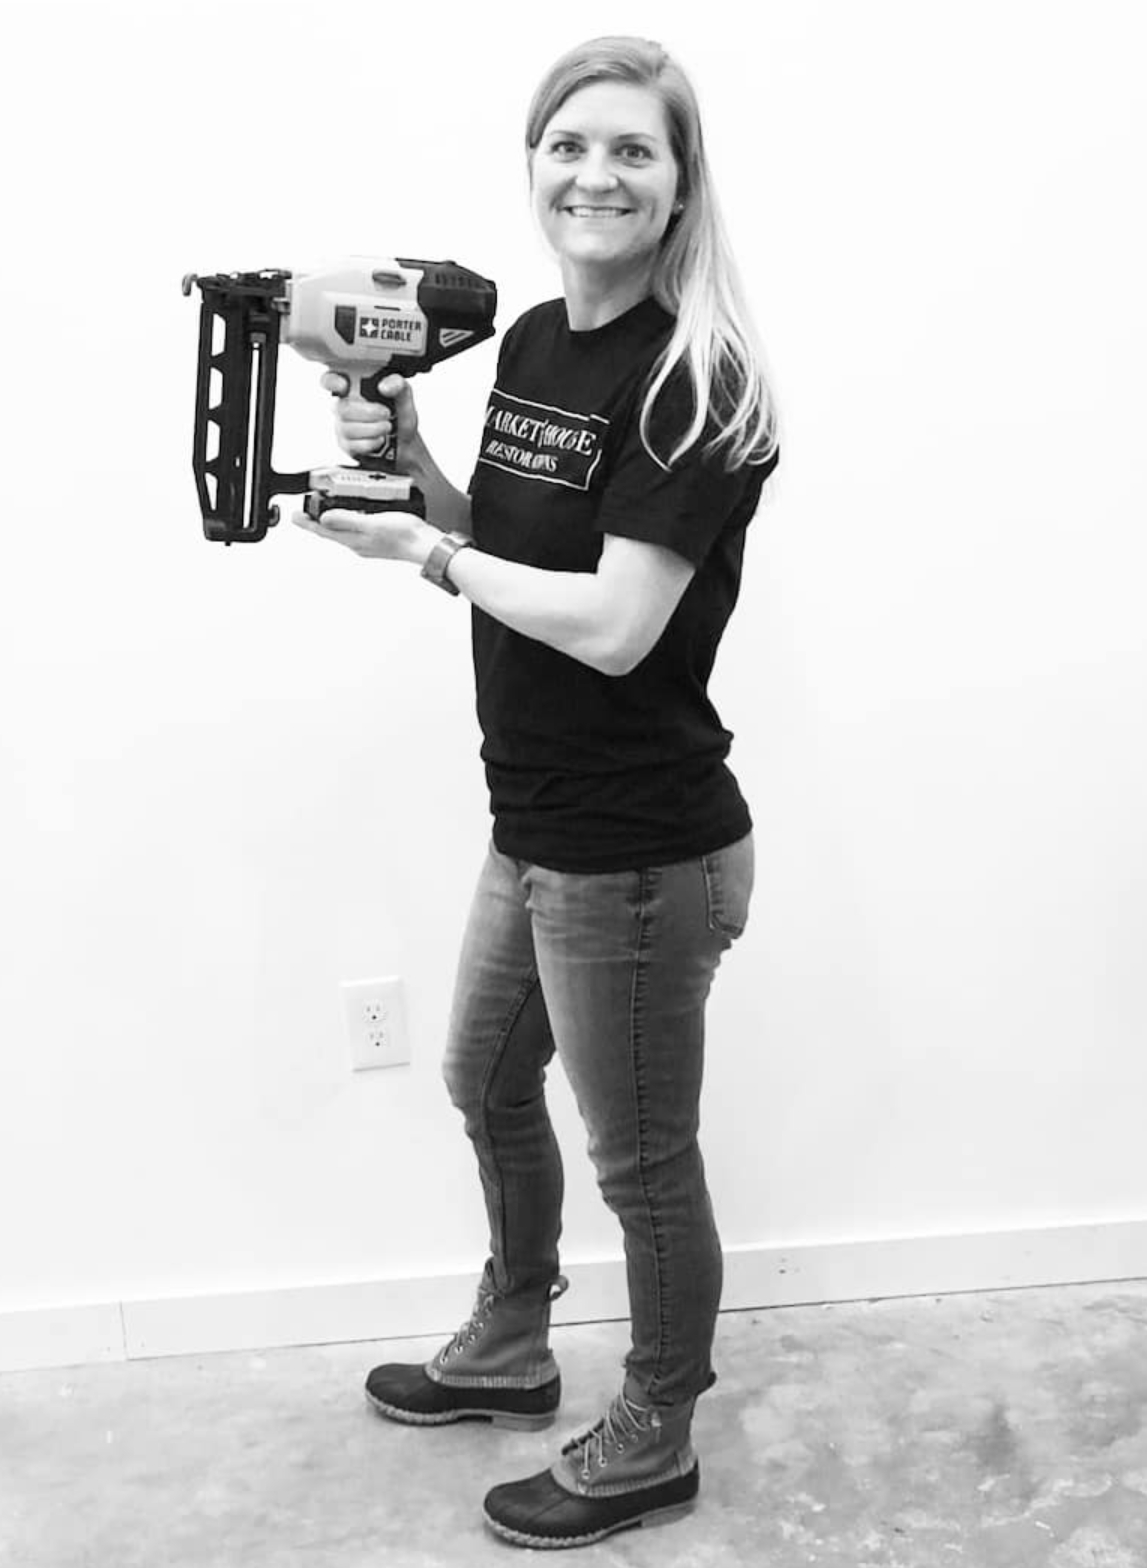 #FridaysWithFallon - Today I'm sharing one of my favorite tools! This cordless brad nailer is a game changer! No hose, air compressor or electricity involved. It's perfect for restoring furniture because it doesn't put out too much power like an industrial nail gun. We use it all over the house, too! Click HERE for my affiliate link!